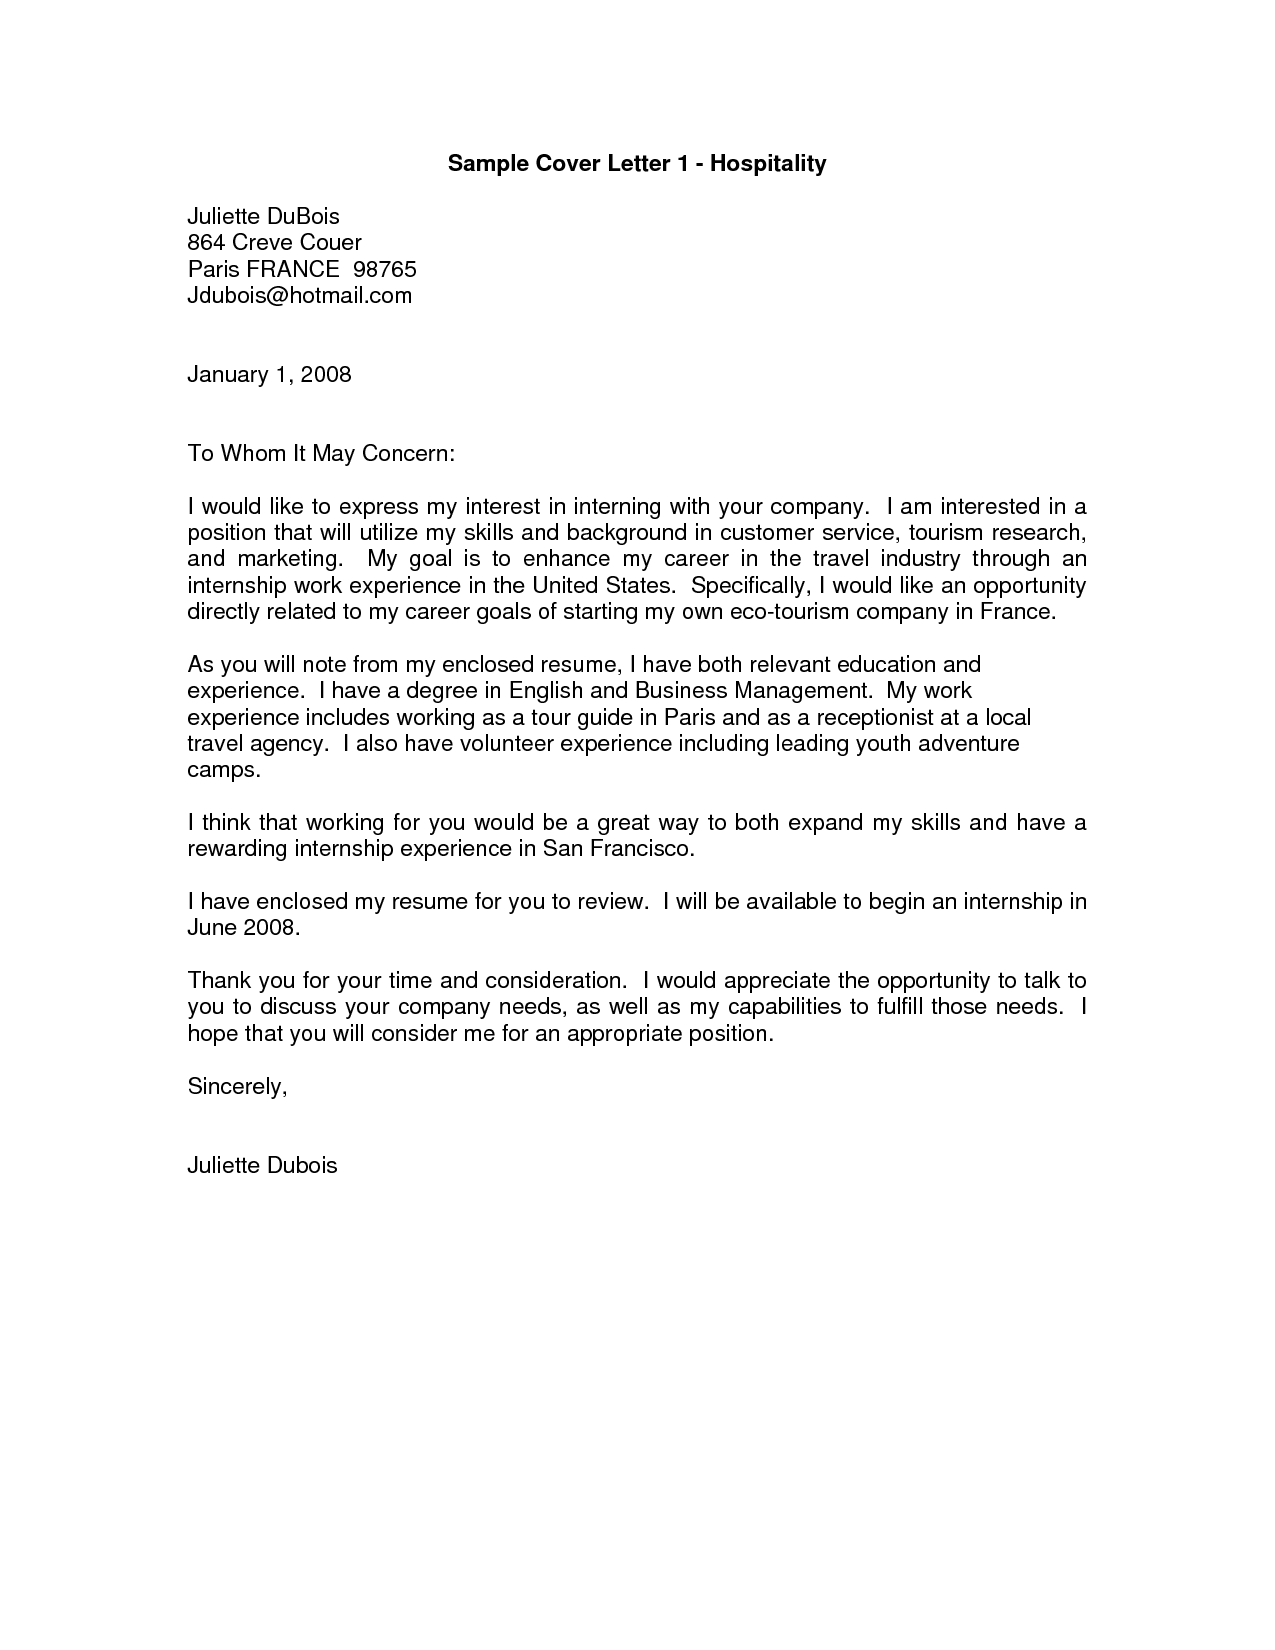 Customer Service Cover Letter Relocation Essay Writing ...